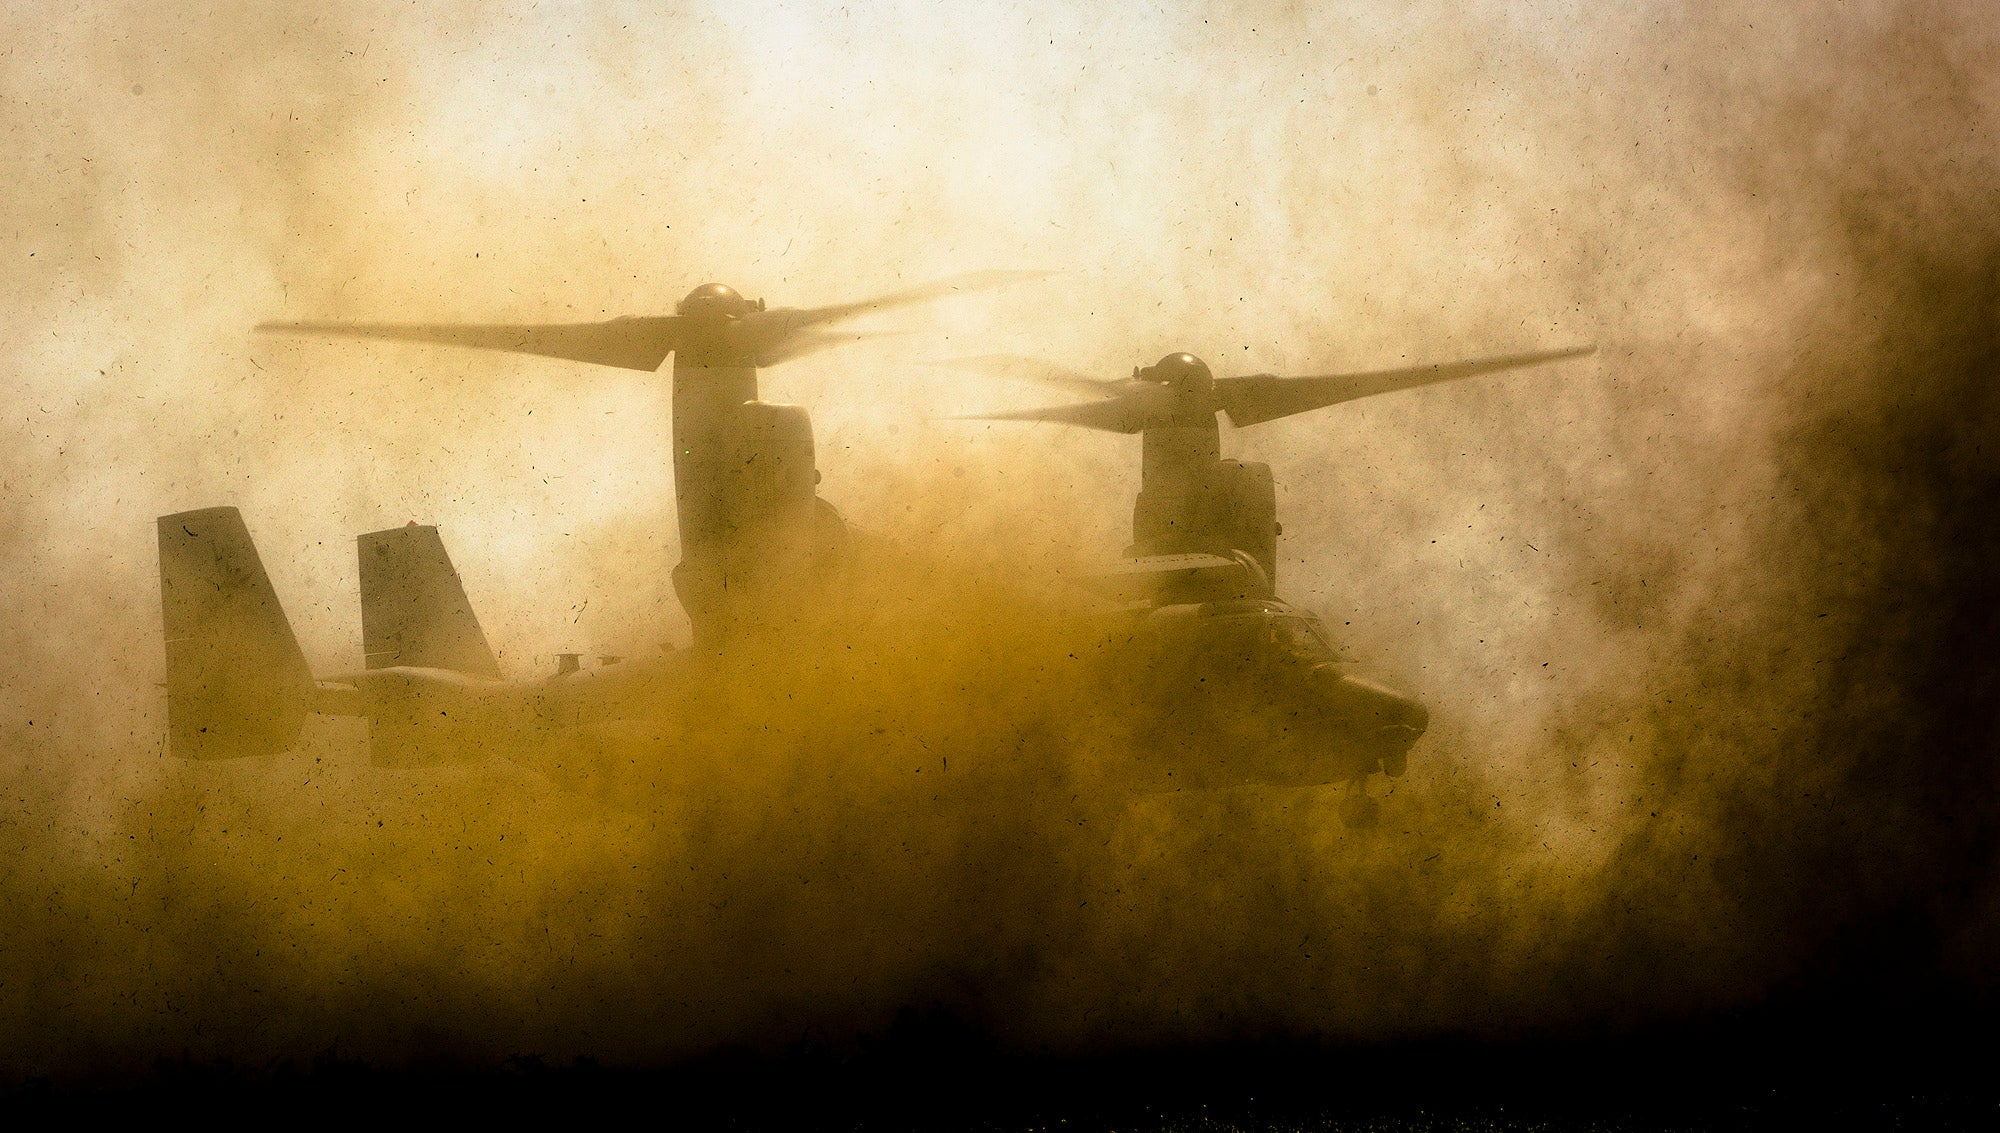 This Is a Photo of an Osprey Aircraft, Not a Moody Painting